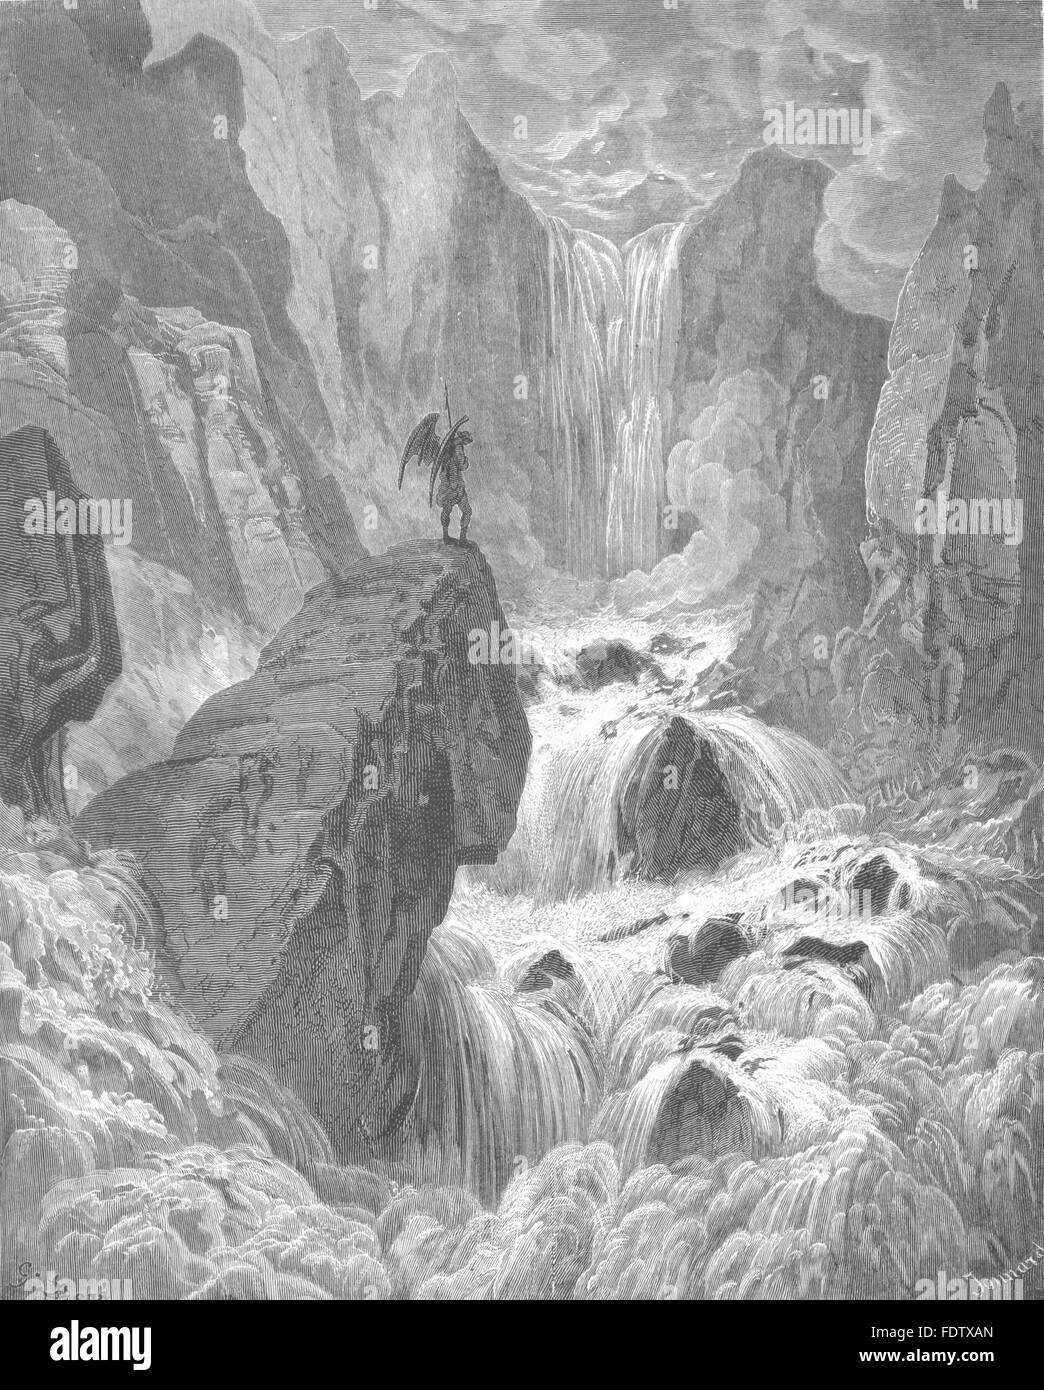 MILTON PARADISE LOST: In with the river sunk, and with it rose, Satan, c1886 - Stock Image